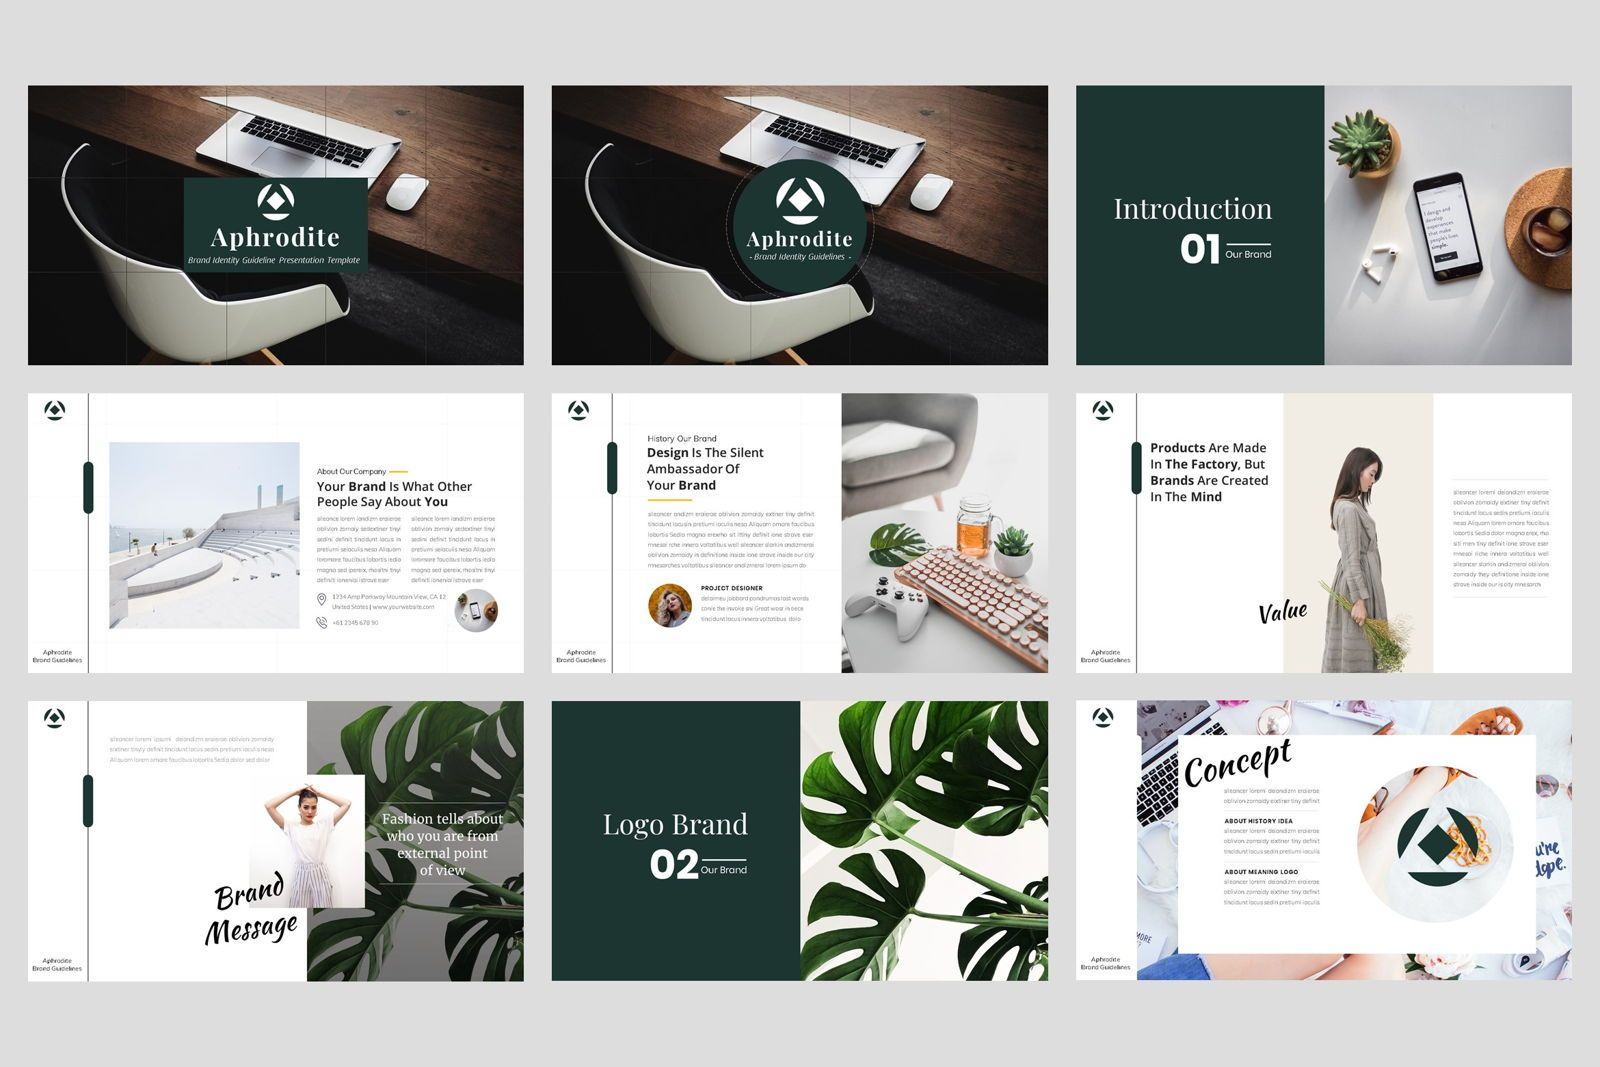 Brand Identity Guideline PowerPoint Template, Slide 2, 08594, Presentation Templates — PoweredTemplate.com